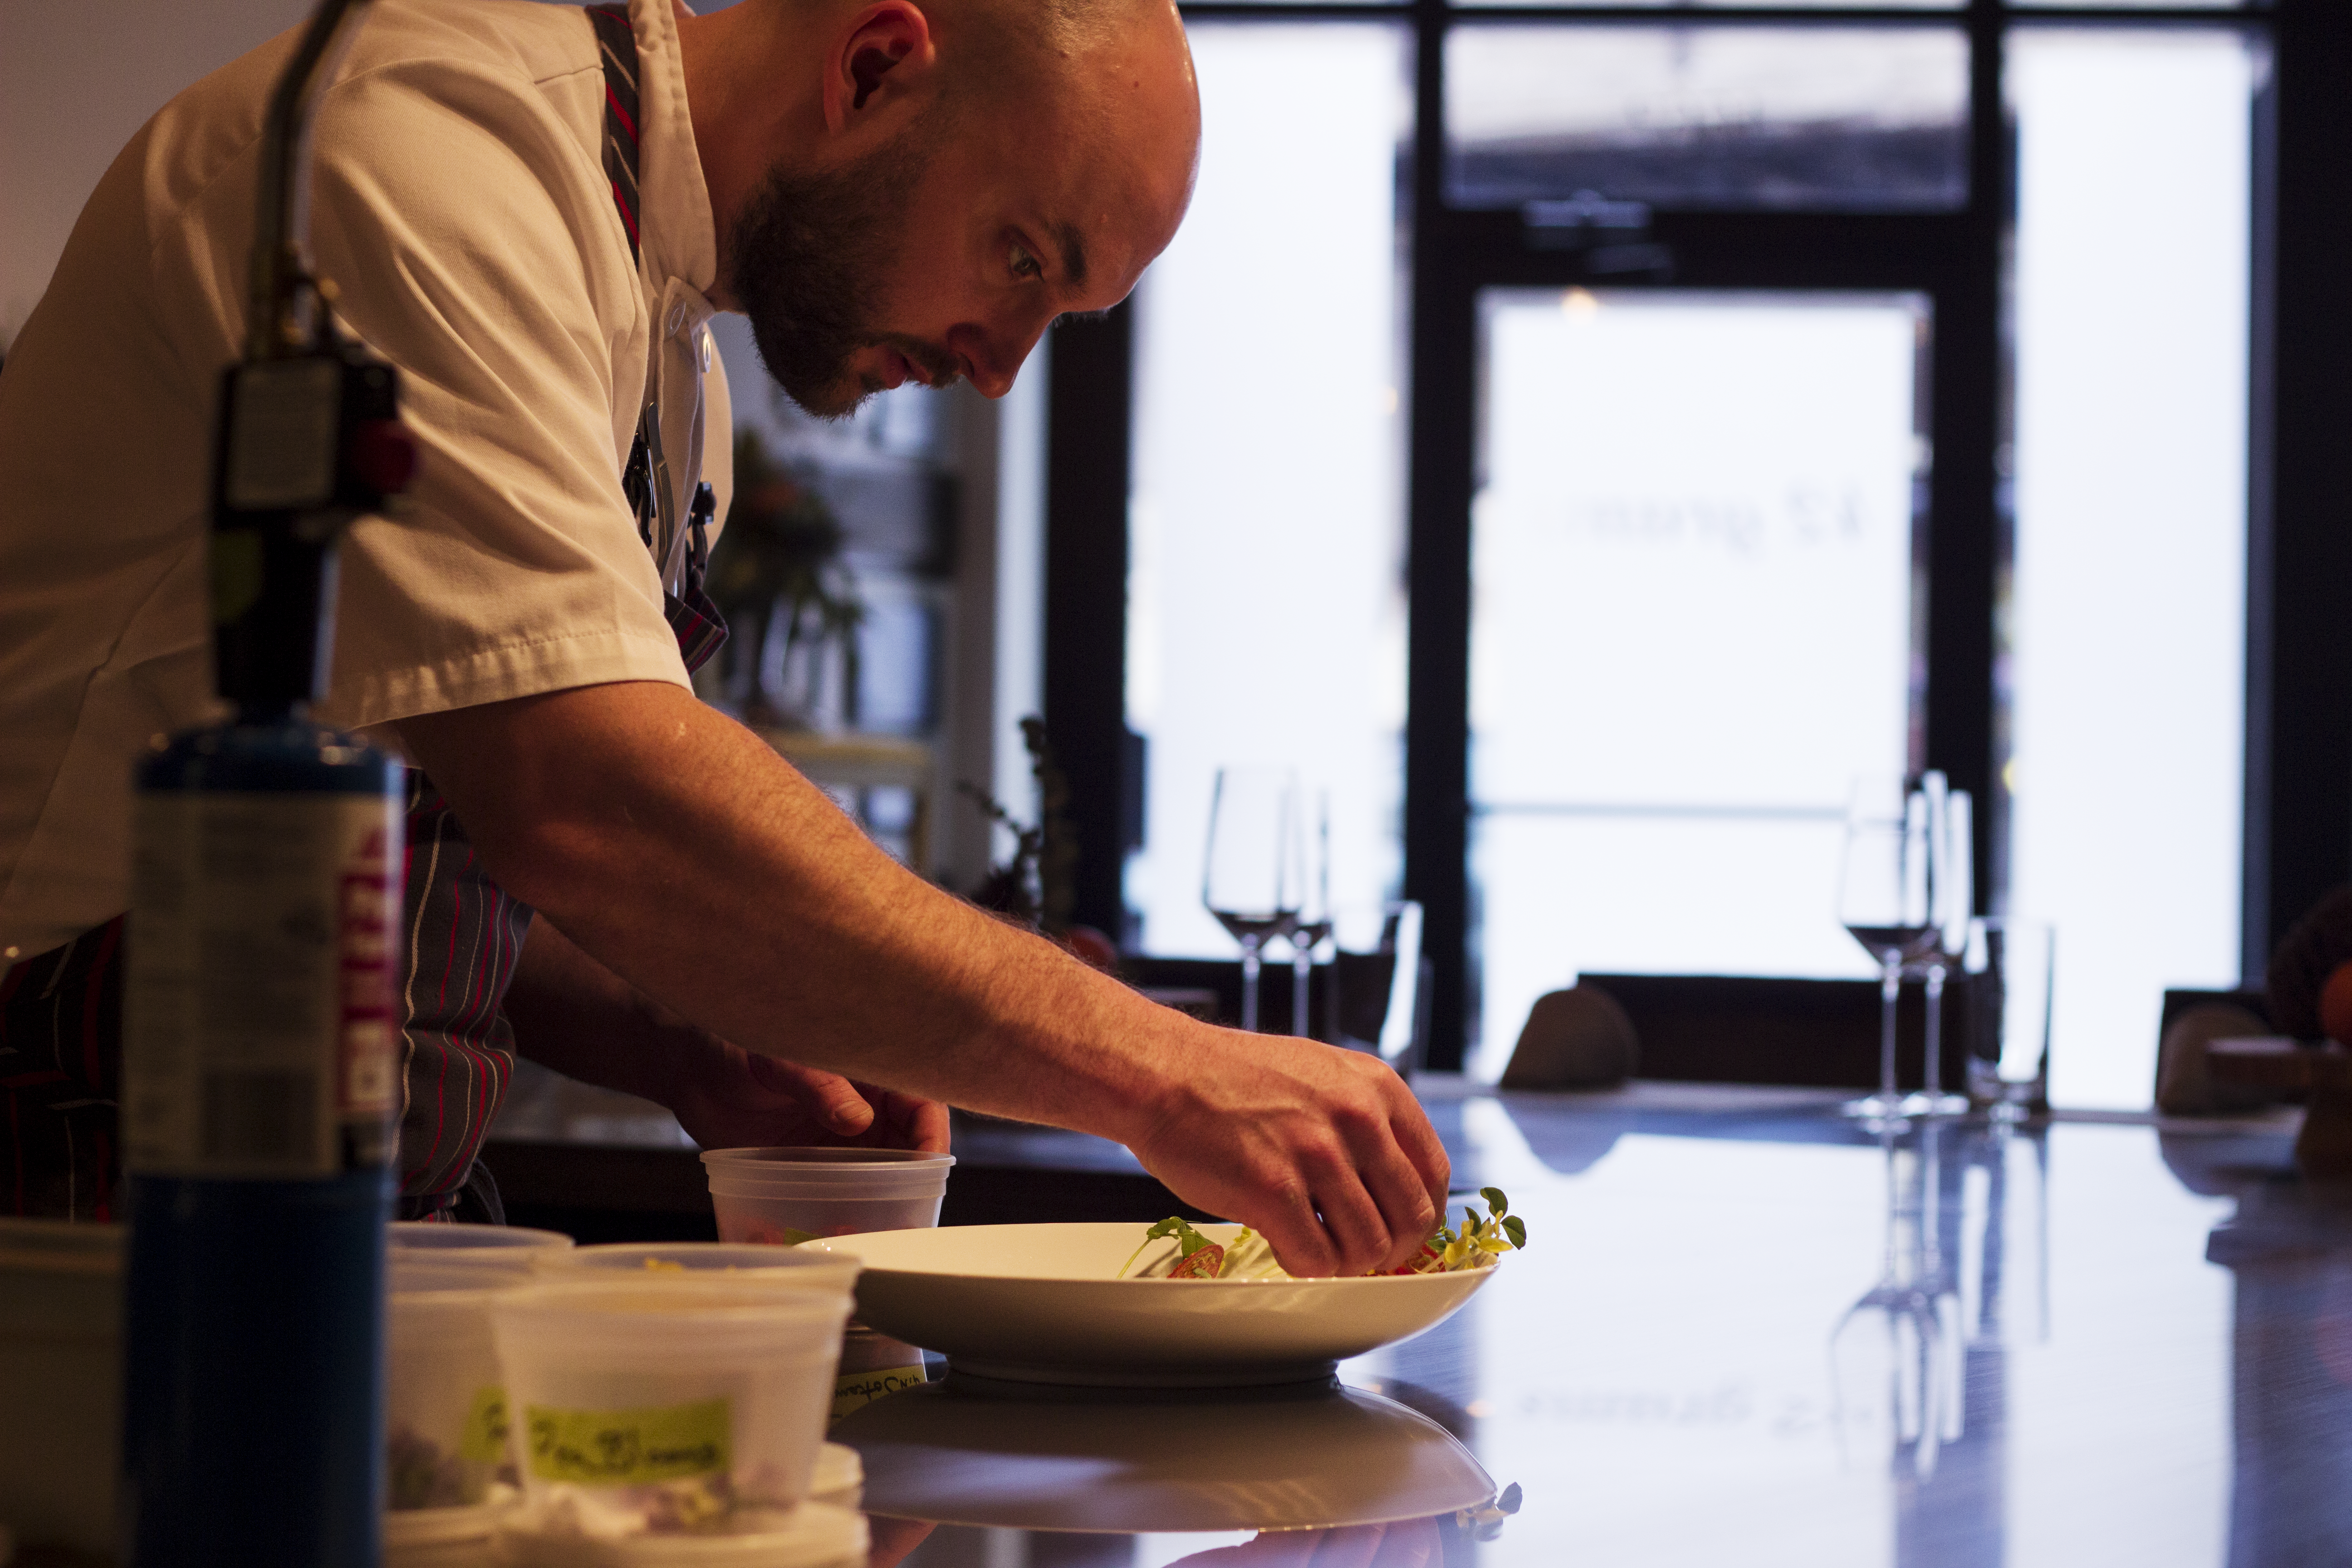 A chef bent over, plating food into a shallow bowl.